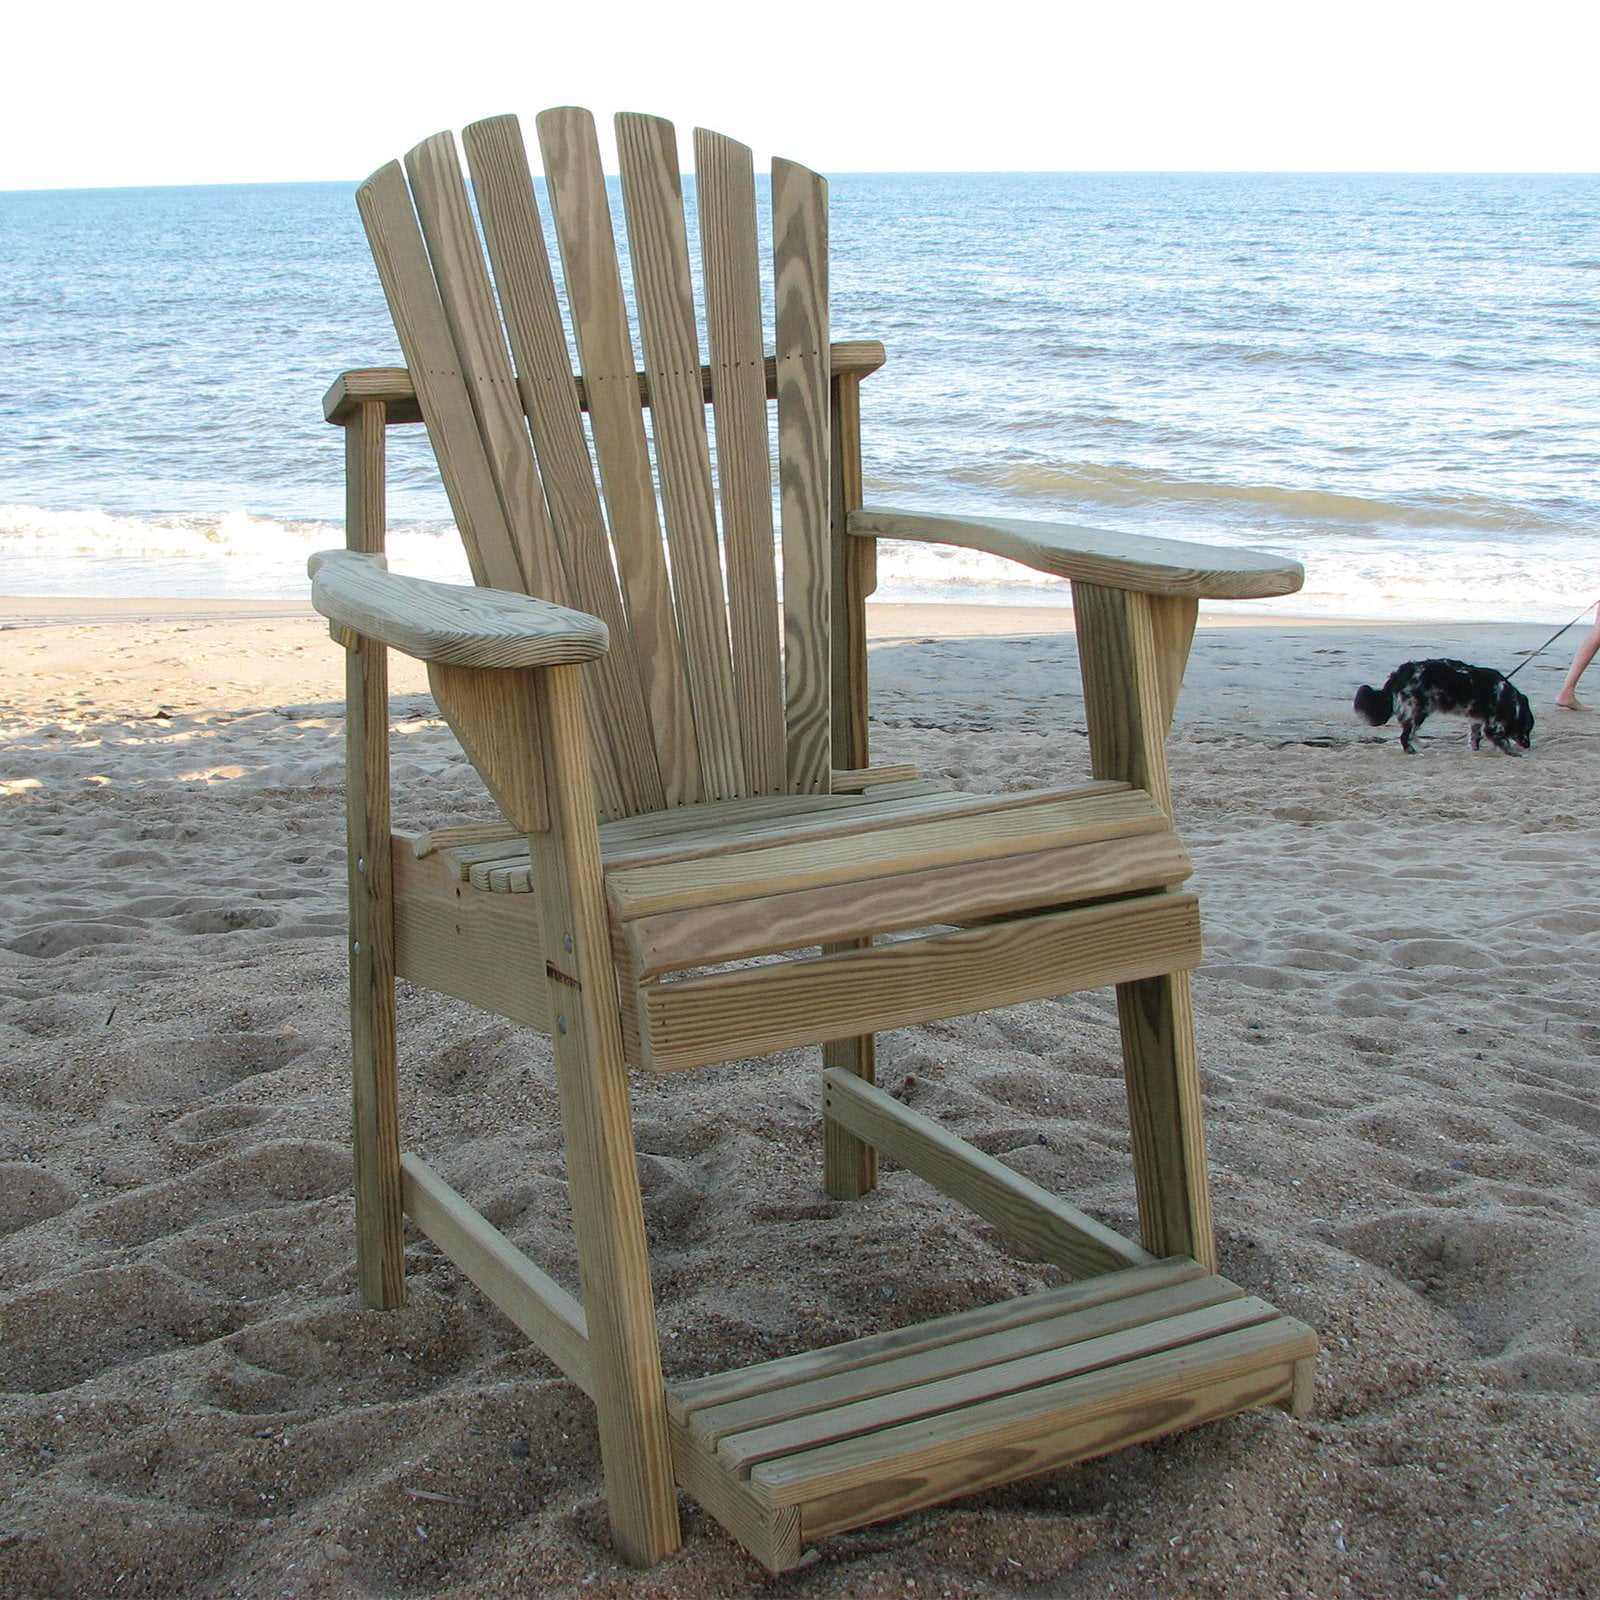 Weathercraft Designers Choice Treated Balcony Adirondack Chair With  Footrest   Natural   Walmart.com